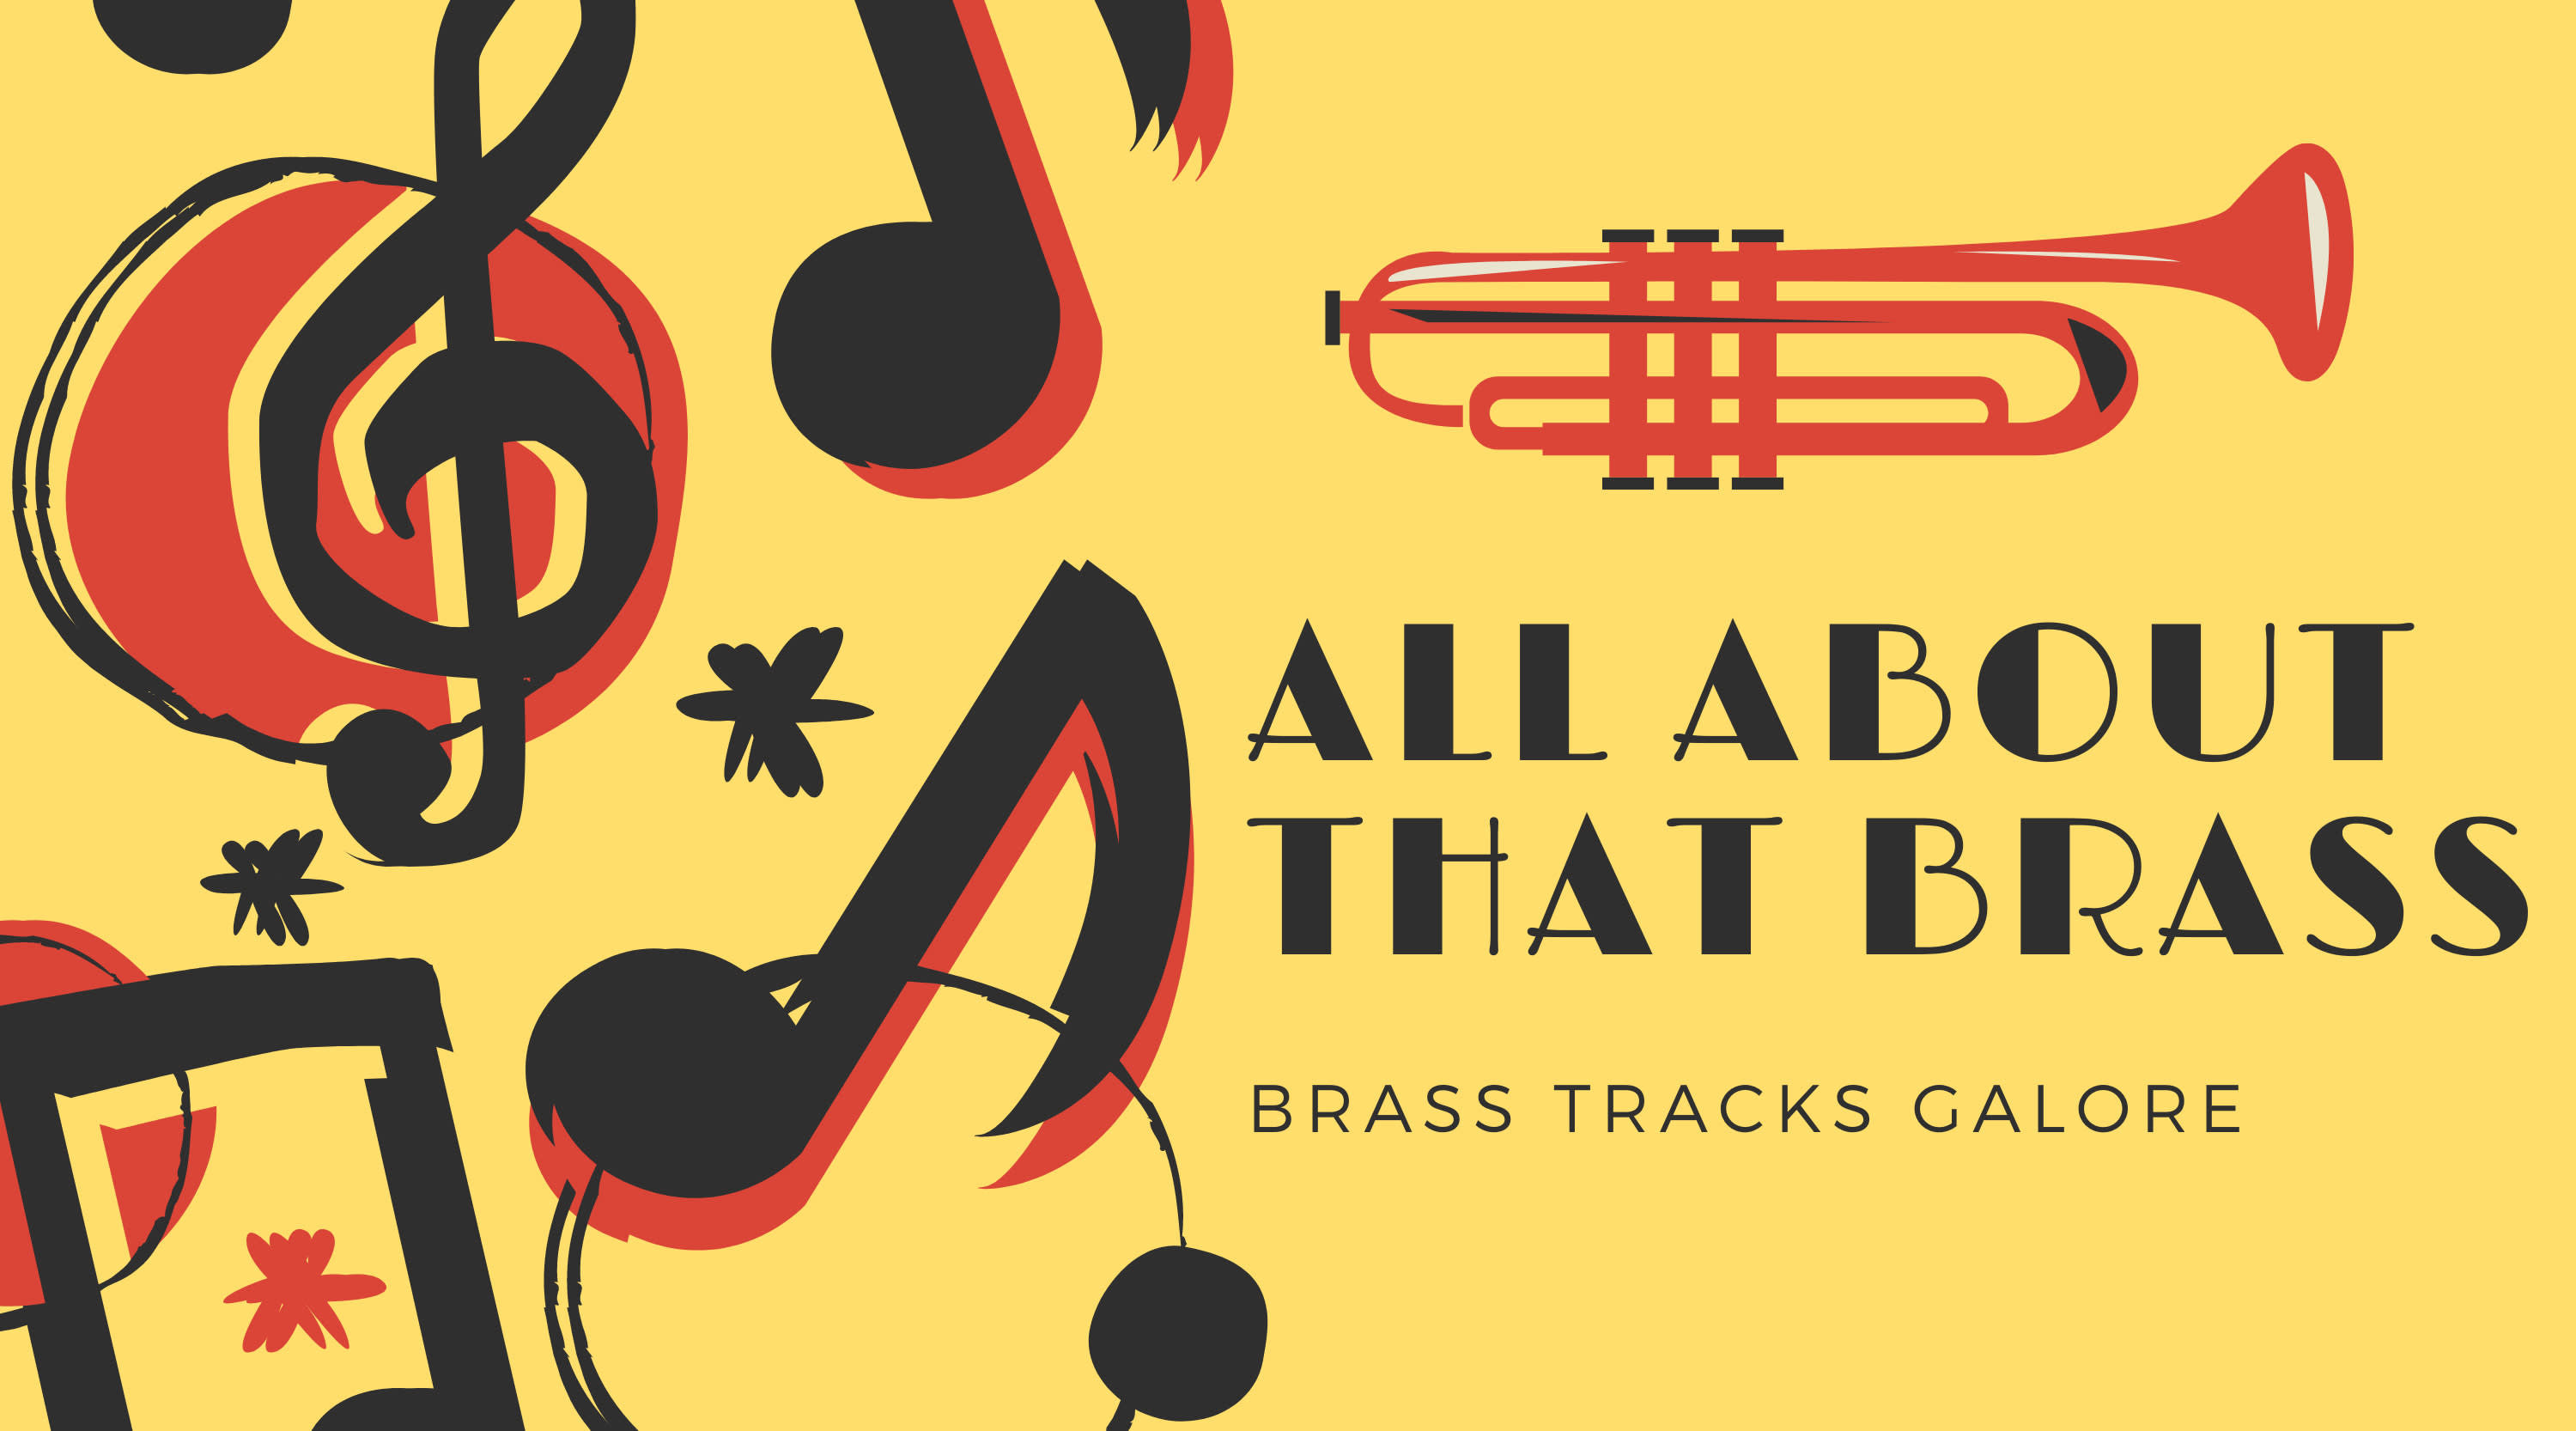 All About That Brass!